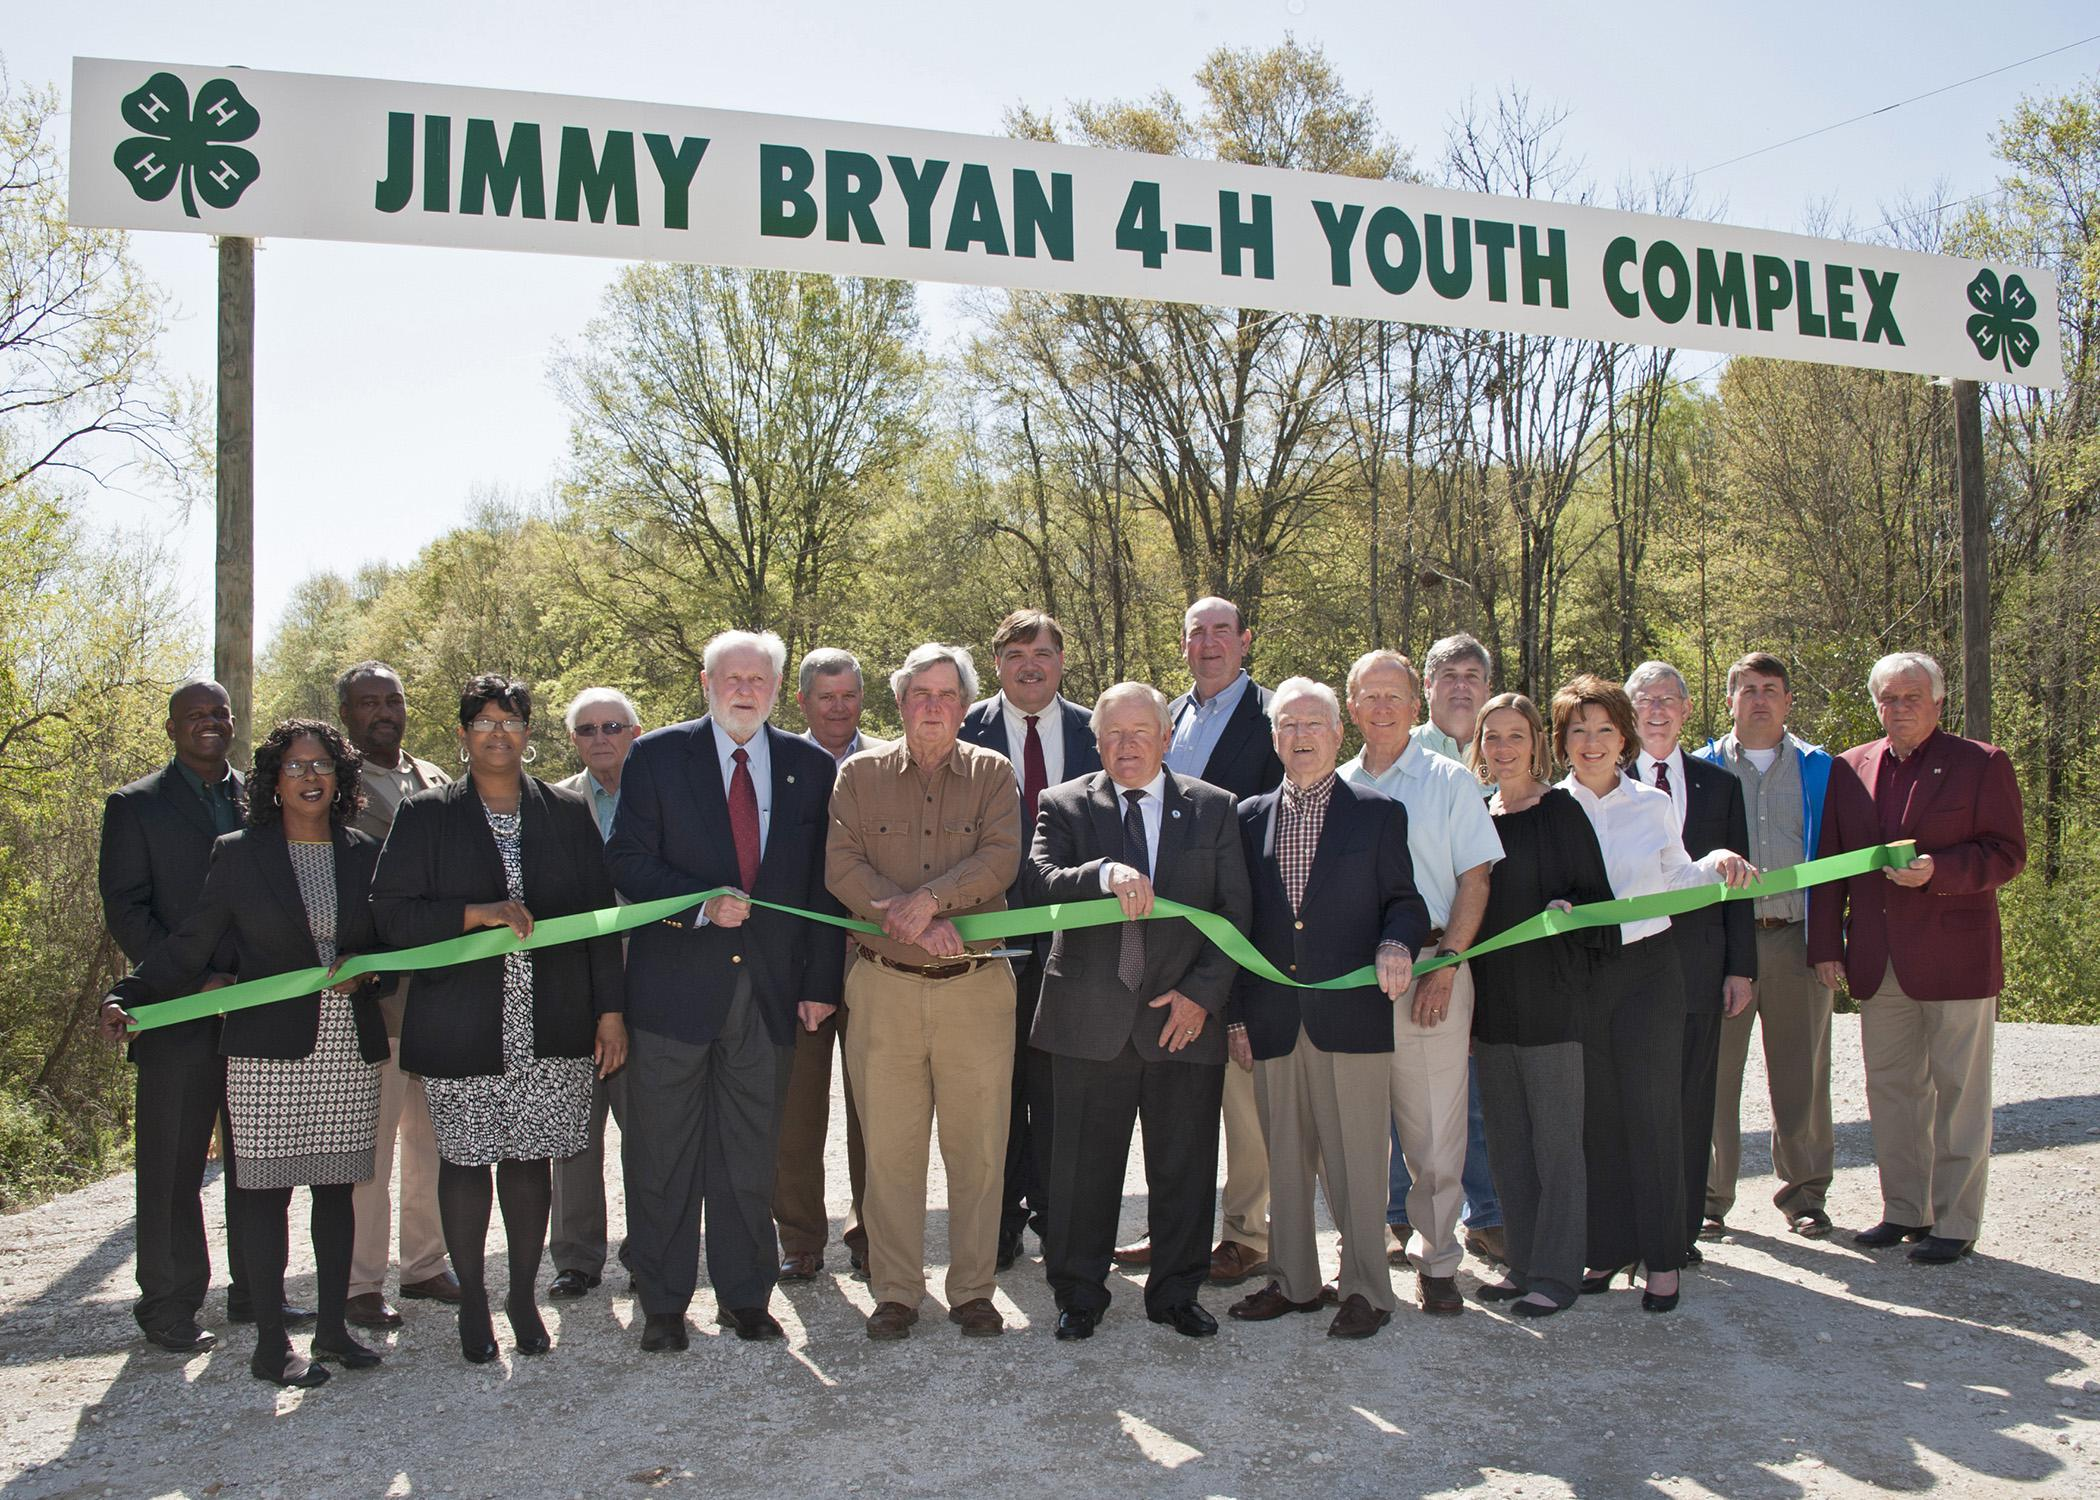 Mississippi State University Extension Service 4-H representatives, state and local officials, and industry representatives enjoy a beautiful day for a ribbon-cutting ceremony for the Jimmy Bryan 4-H Youth Complex in West Point April 10, 2014. Participants include Paula Threadgill, (front row, left), Angela Turner-James, Hobson Waits, Jimmy Bryan, Floyd McKee, Barney Jacks, Robbie Robinson, Paige Lamkin and Amy Berry; Lynn Horton (back row, left), Shelton Deanes, Preston Sullivan, Russell Jolly, Gary Jackso